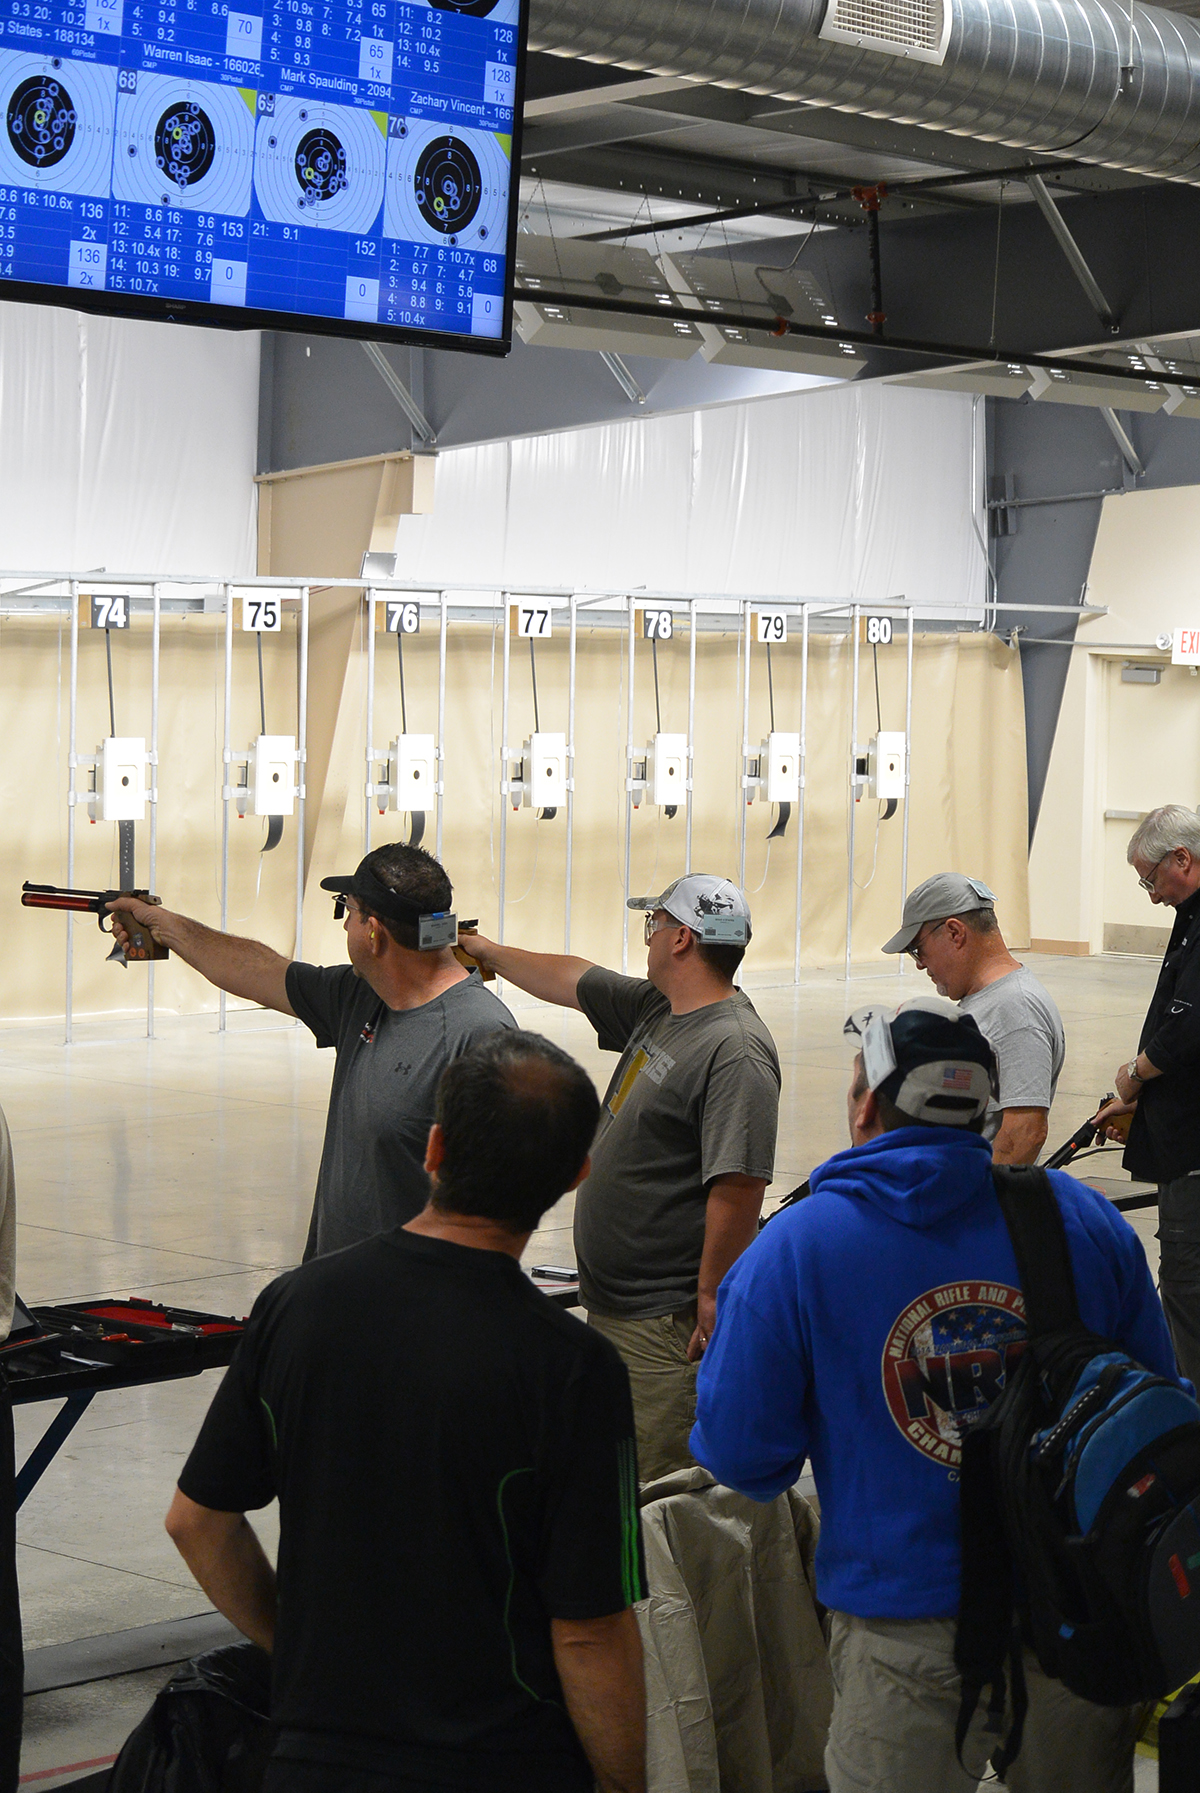 Air Pistol competitors enjoy firing on the the ISSF pistol target as spectators view their shots on the large TV screens above the firing line.